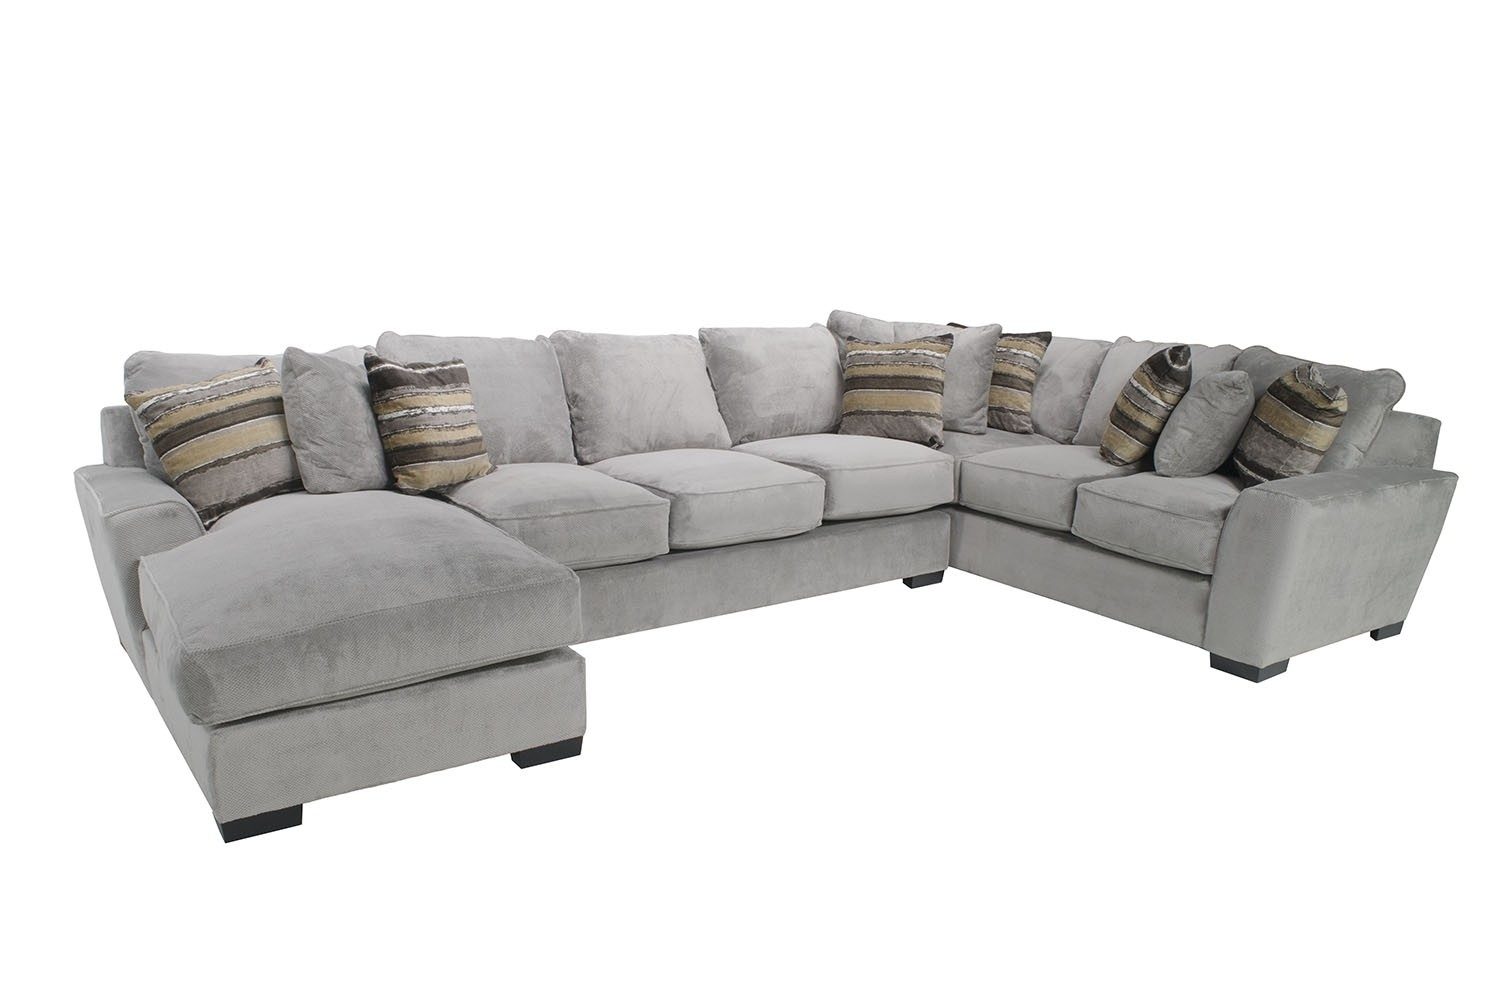 Sectional Sofas | Save Mor Online And In-Store in Marcus Chocolate 6 Piece Sectionals With Power Headrest And Usb (Image 18 of 30)